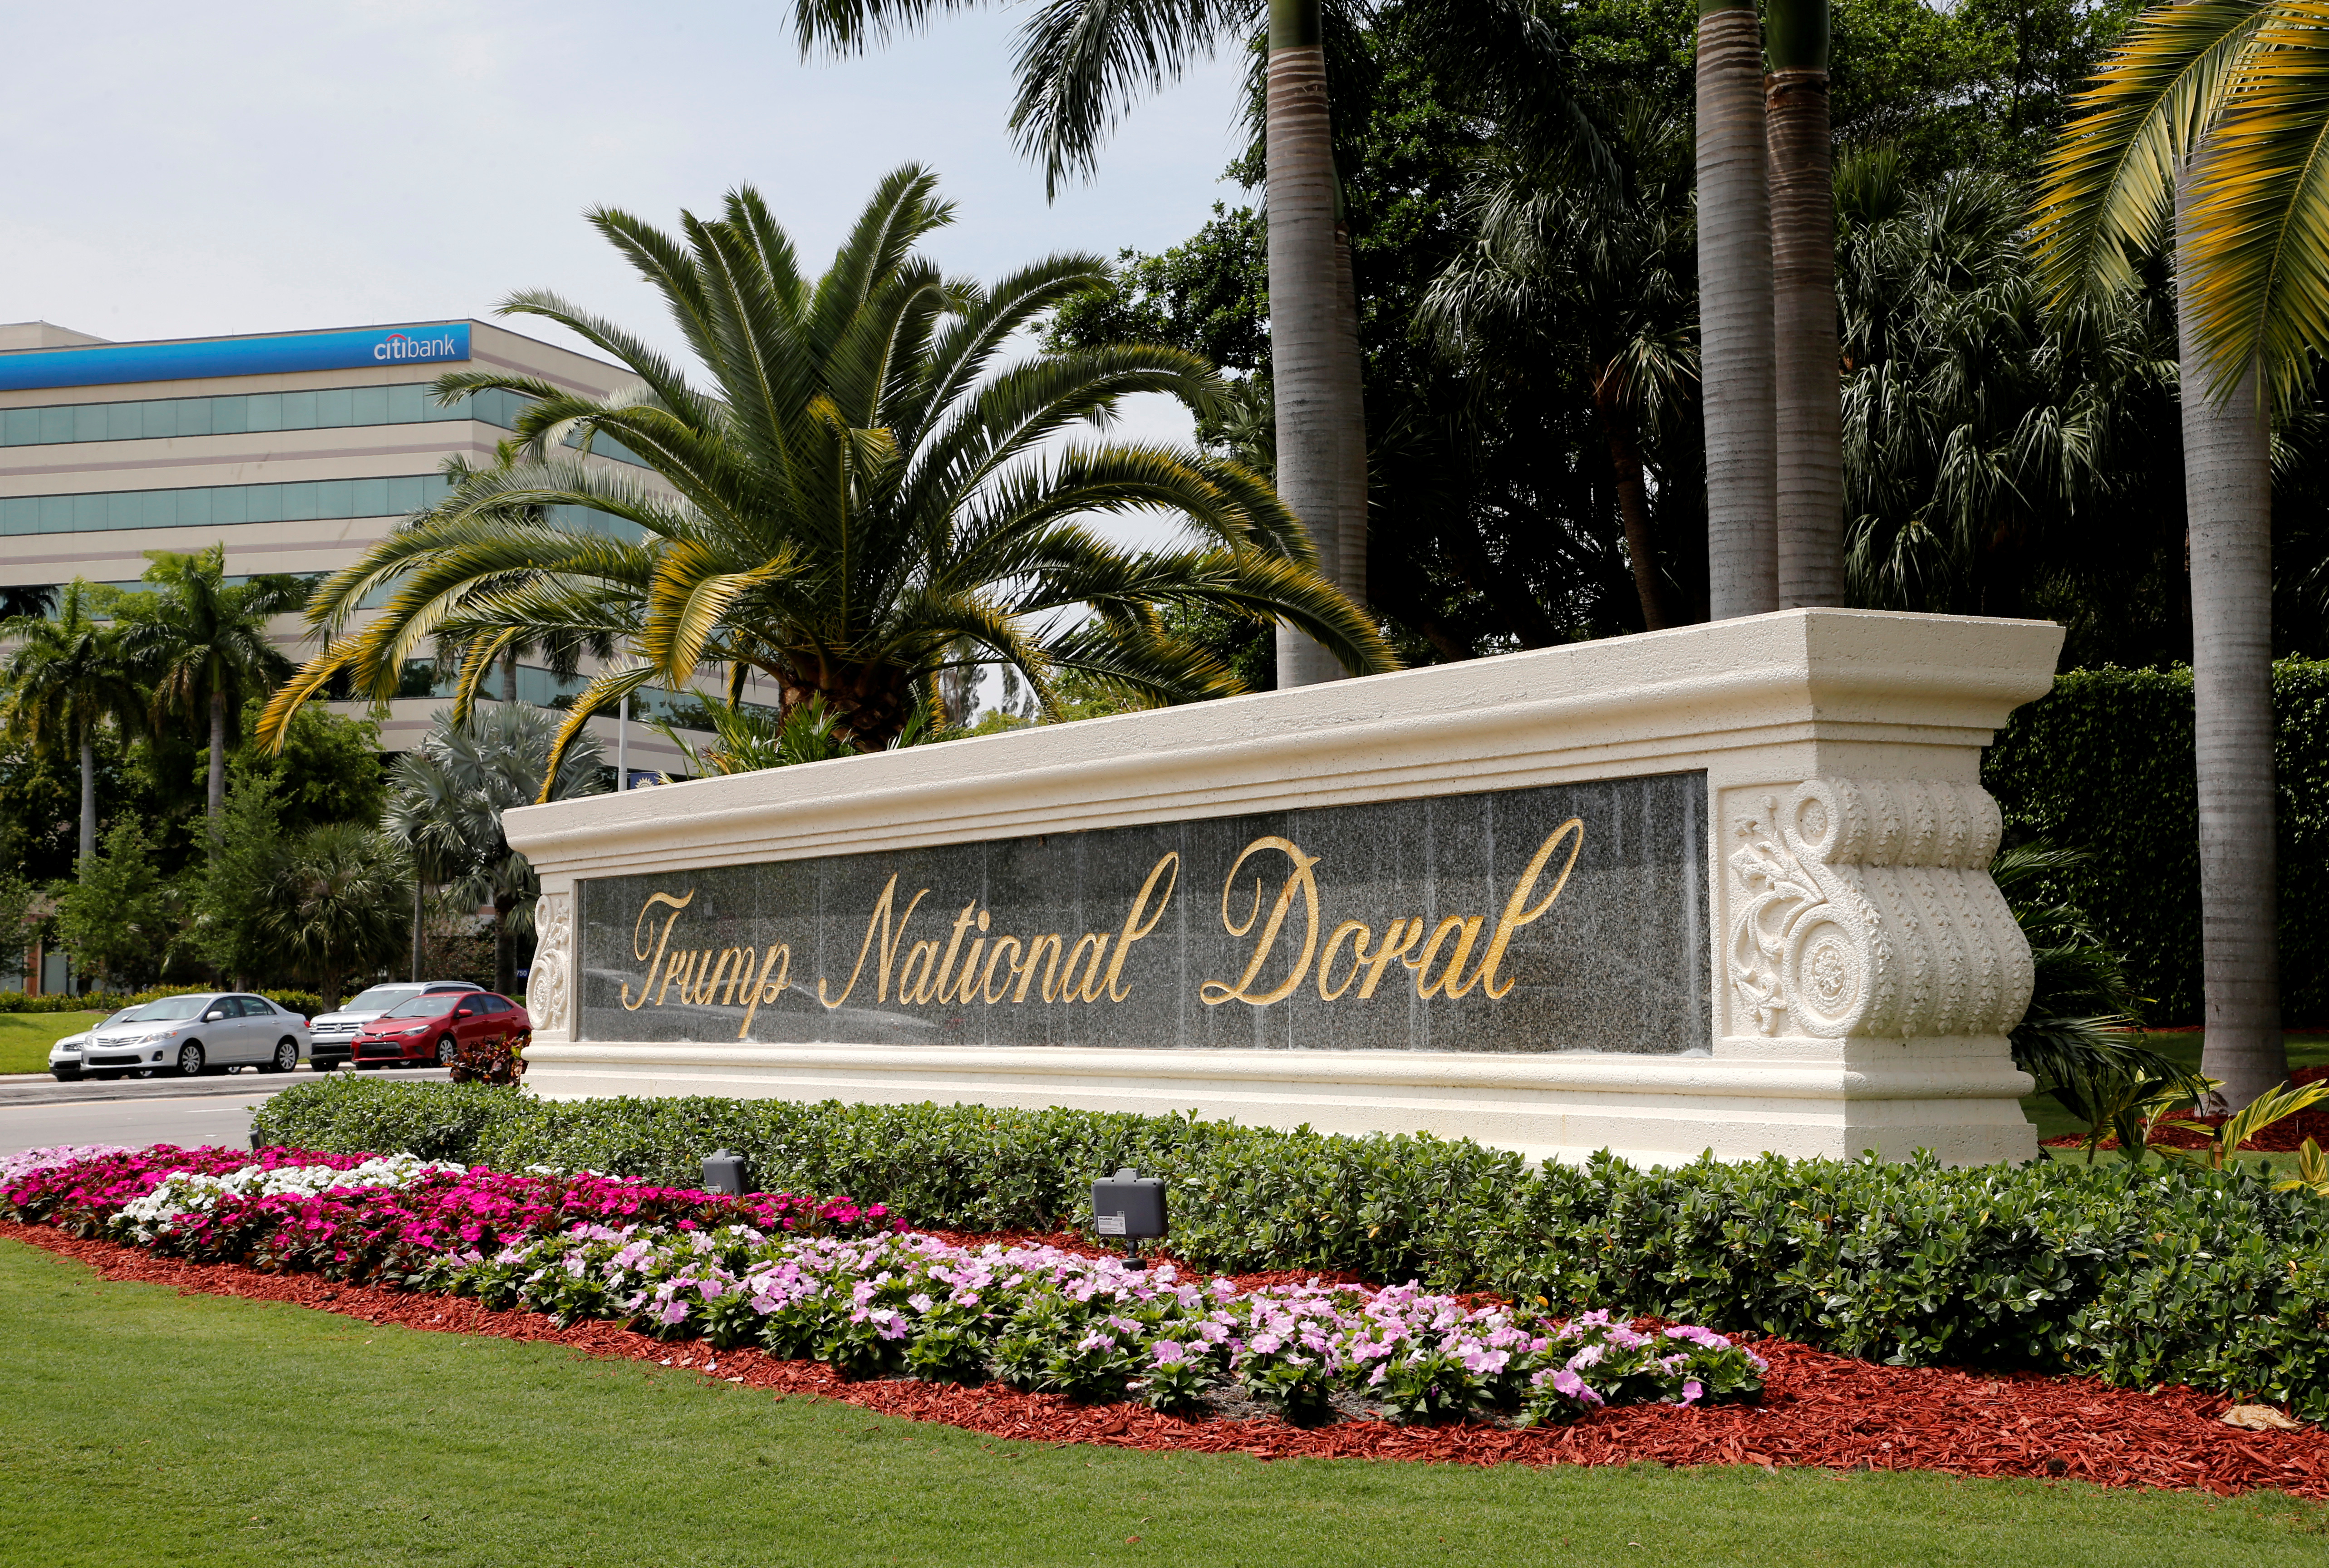 Democrats to investigate Trump proposal to host G7 at resort he owns